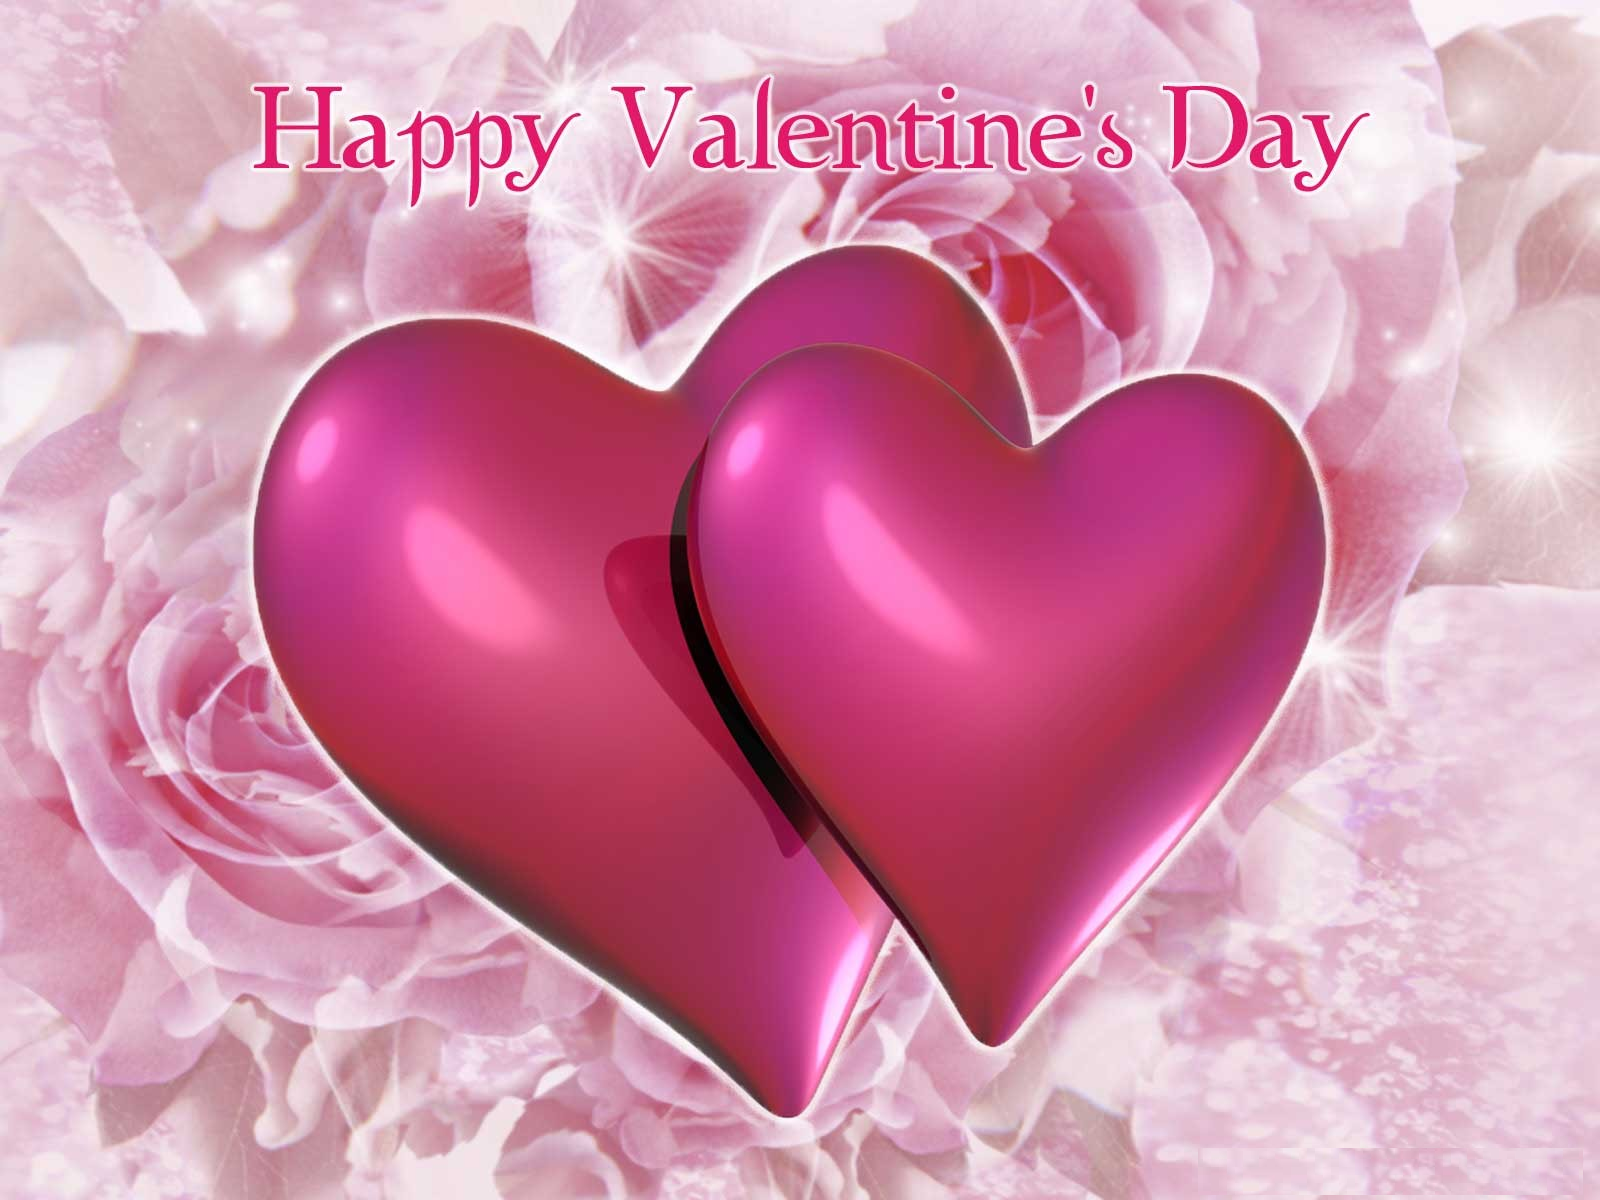 valentines day images for whatsapp dp, profile wallpapers – free